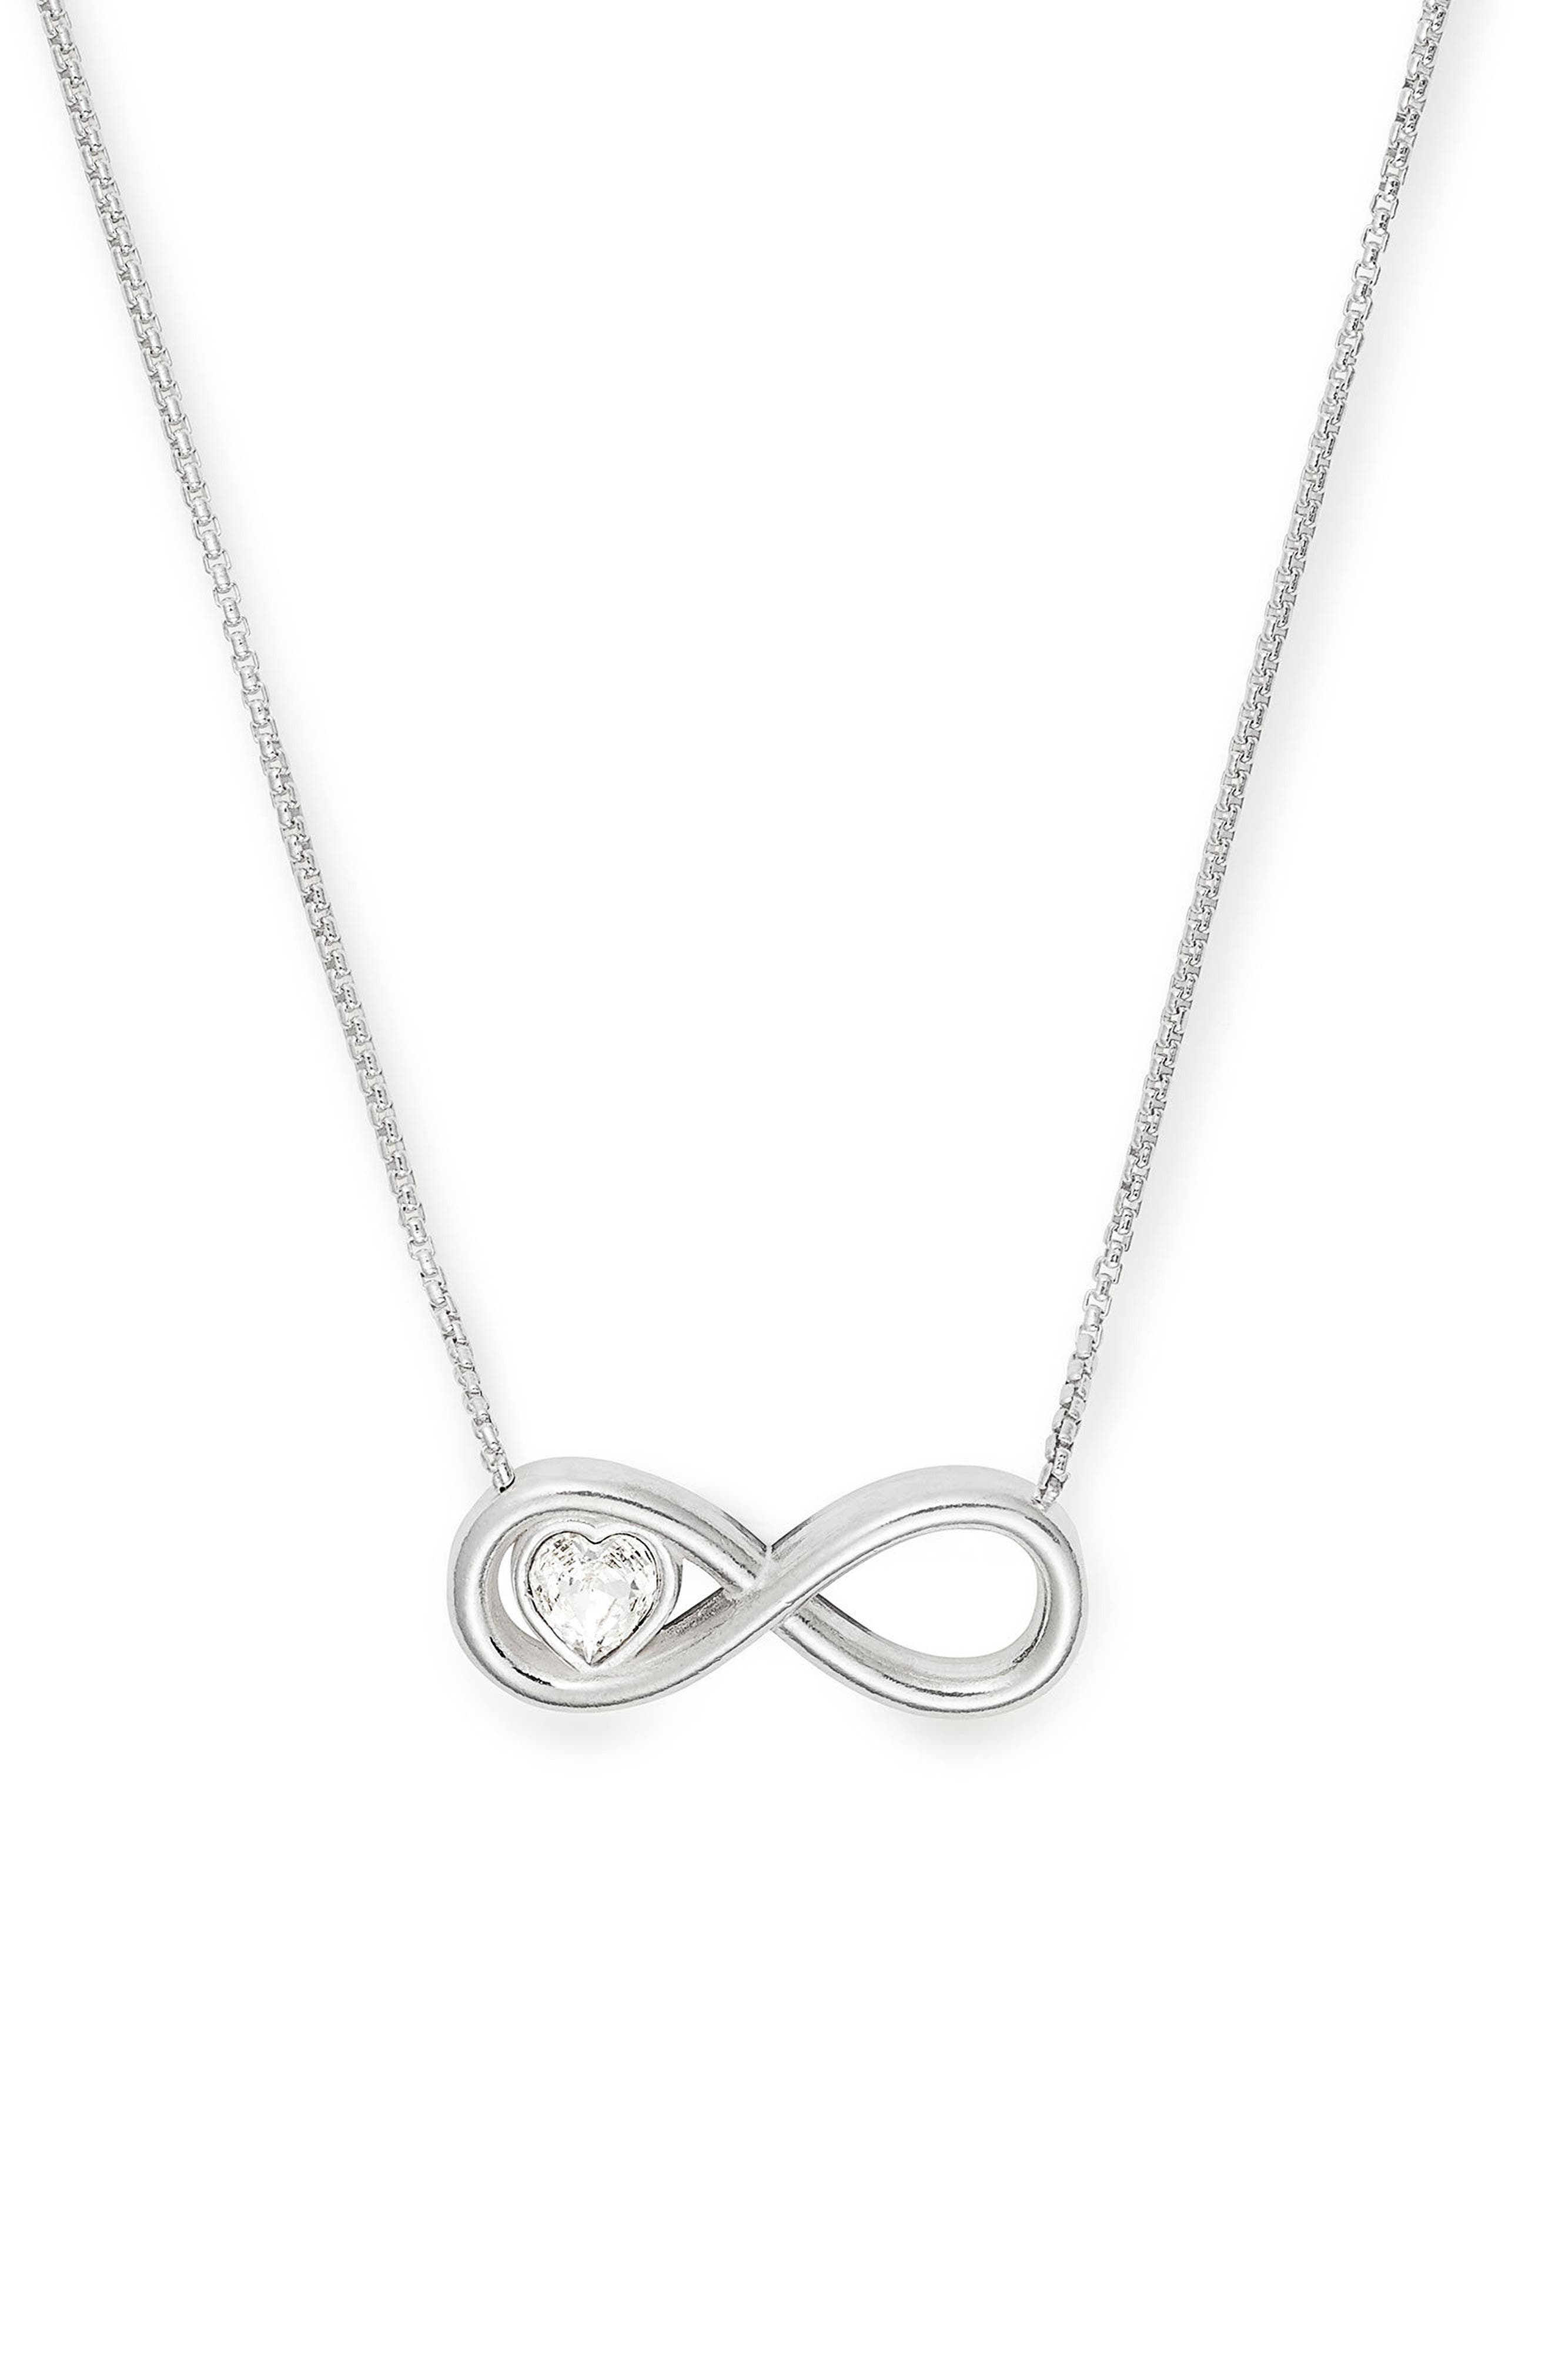 Infinite Love Necklace,                             Alternate thumbnail 2, color,                             040